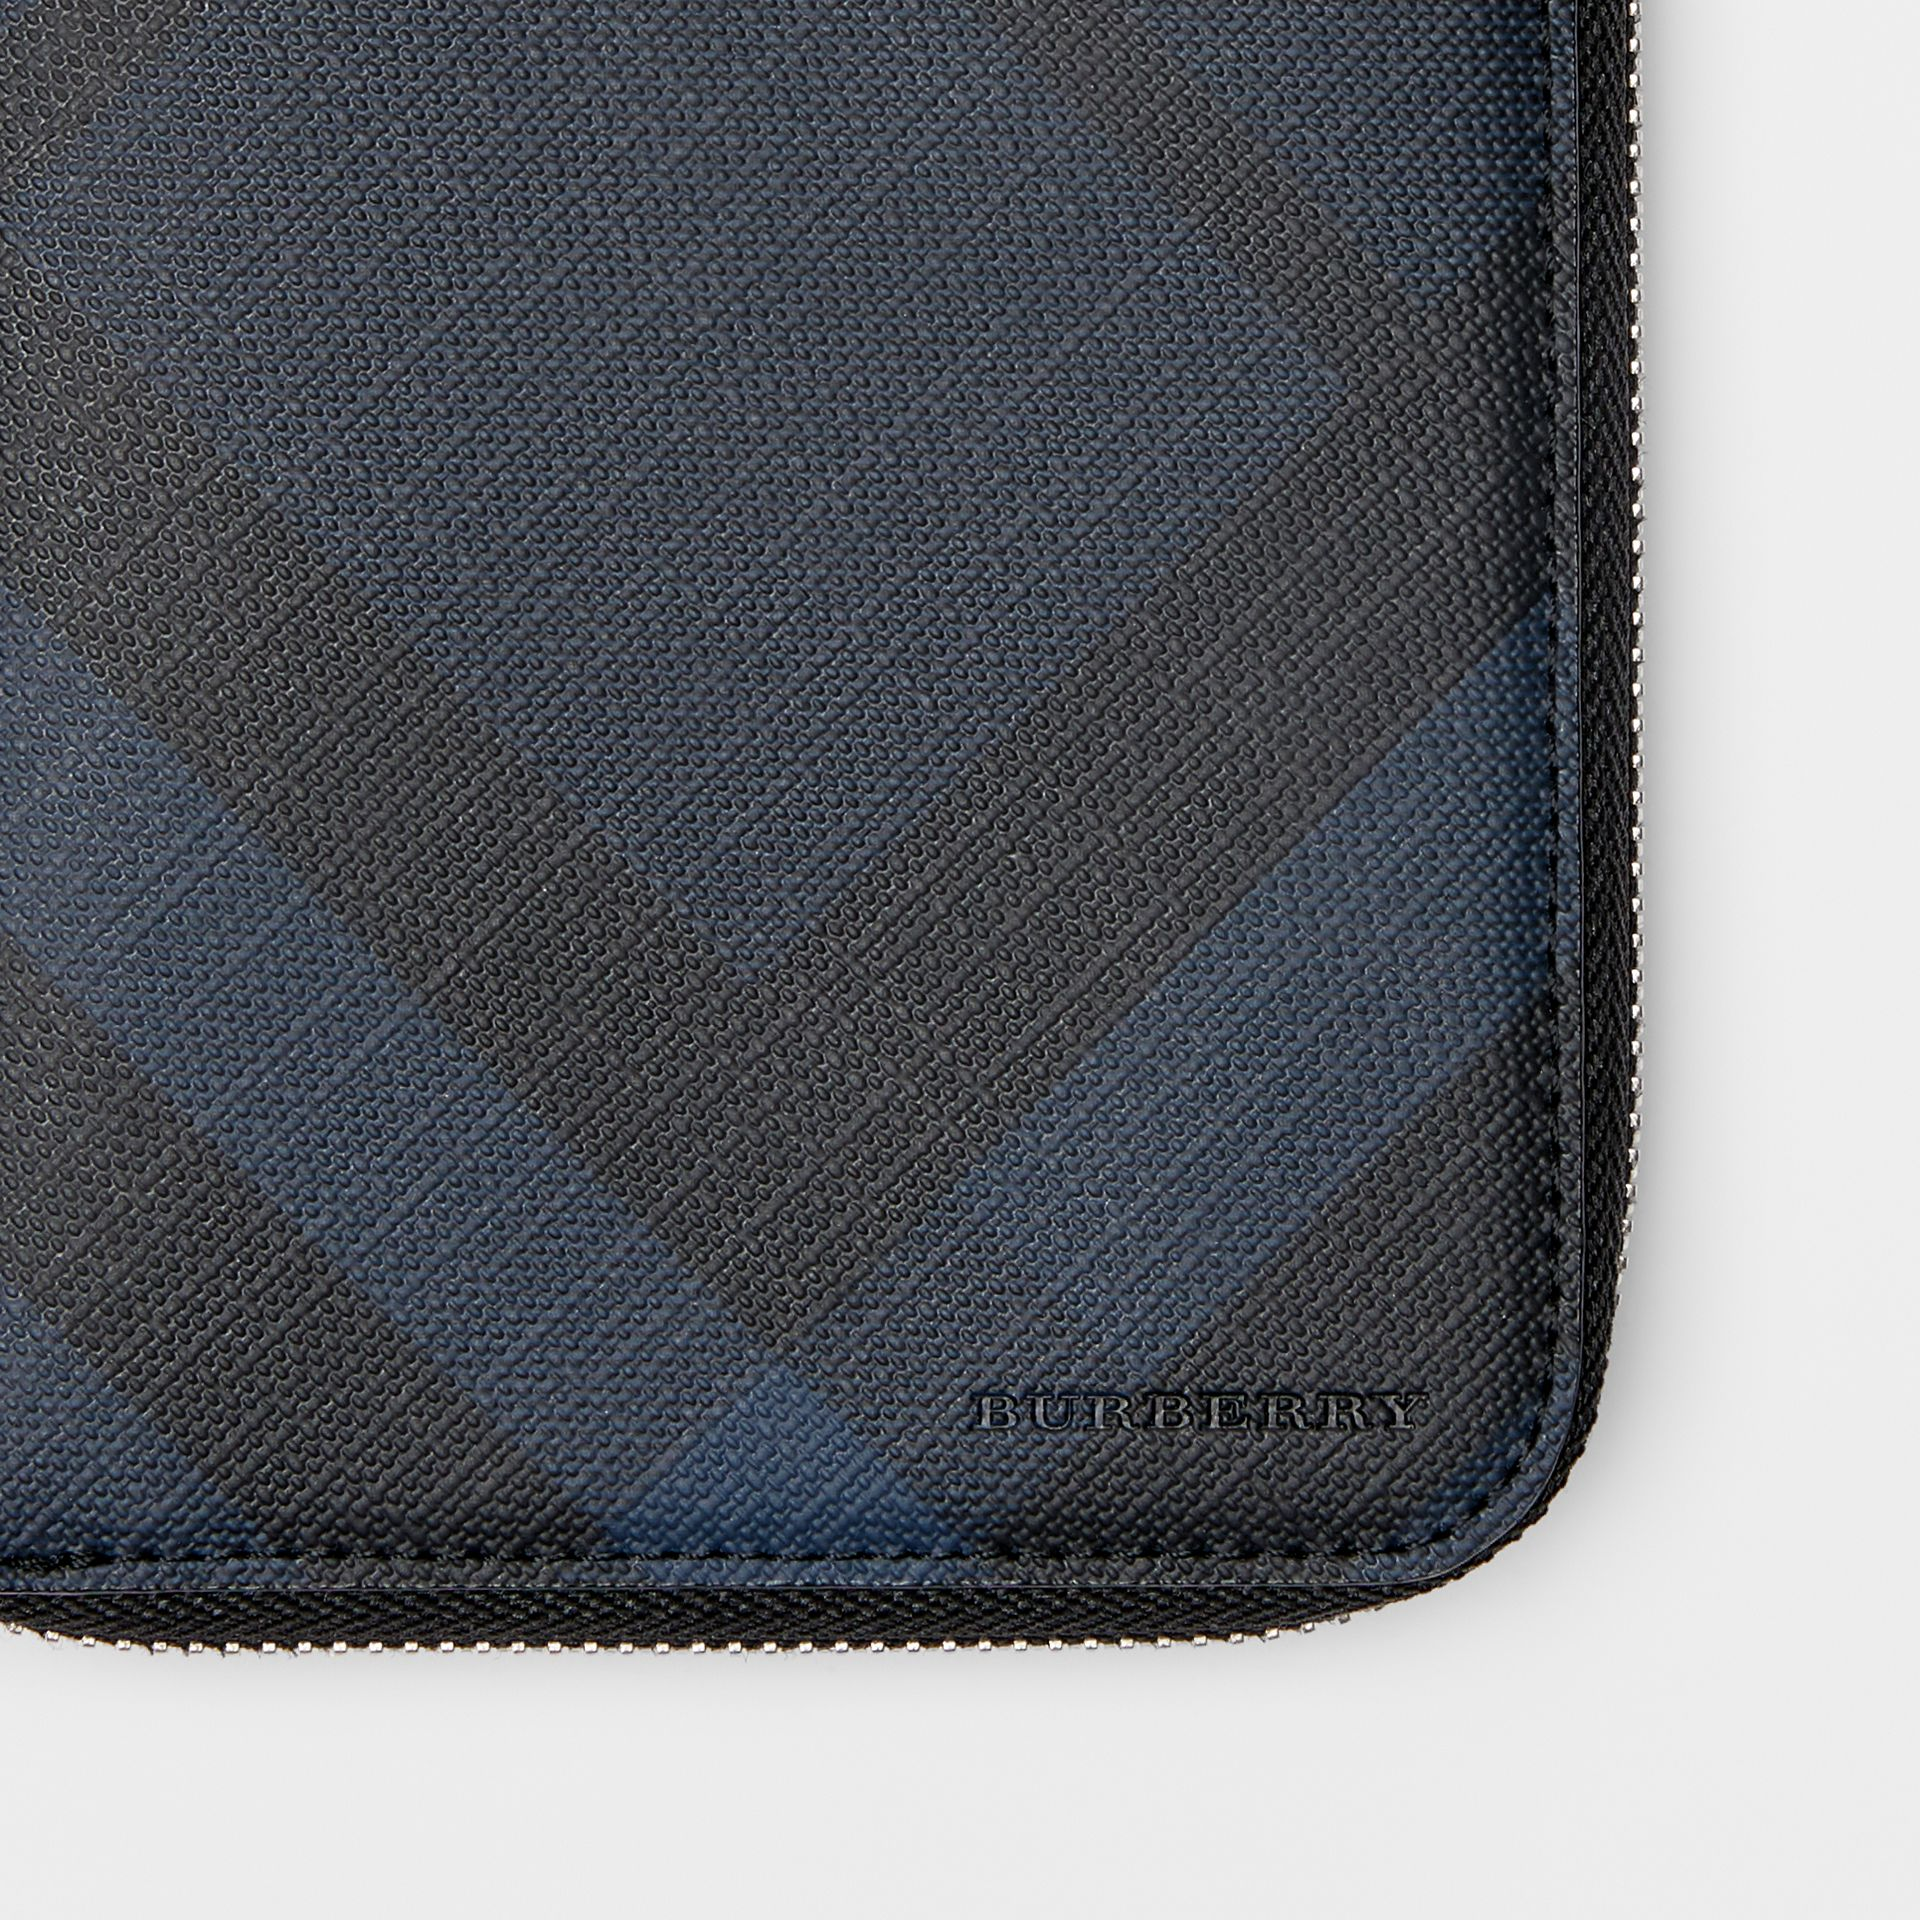 London Check and Leather Ziparound Wallet in Navy/black - Men | Burberry Canada - gallery image 1